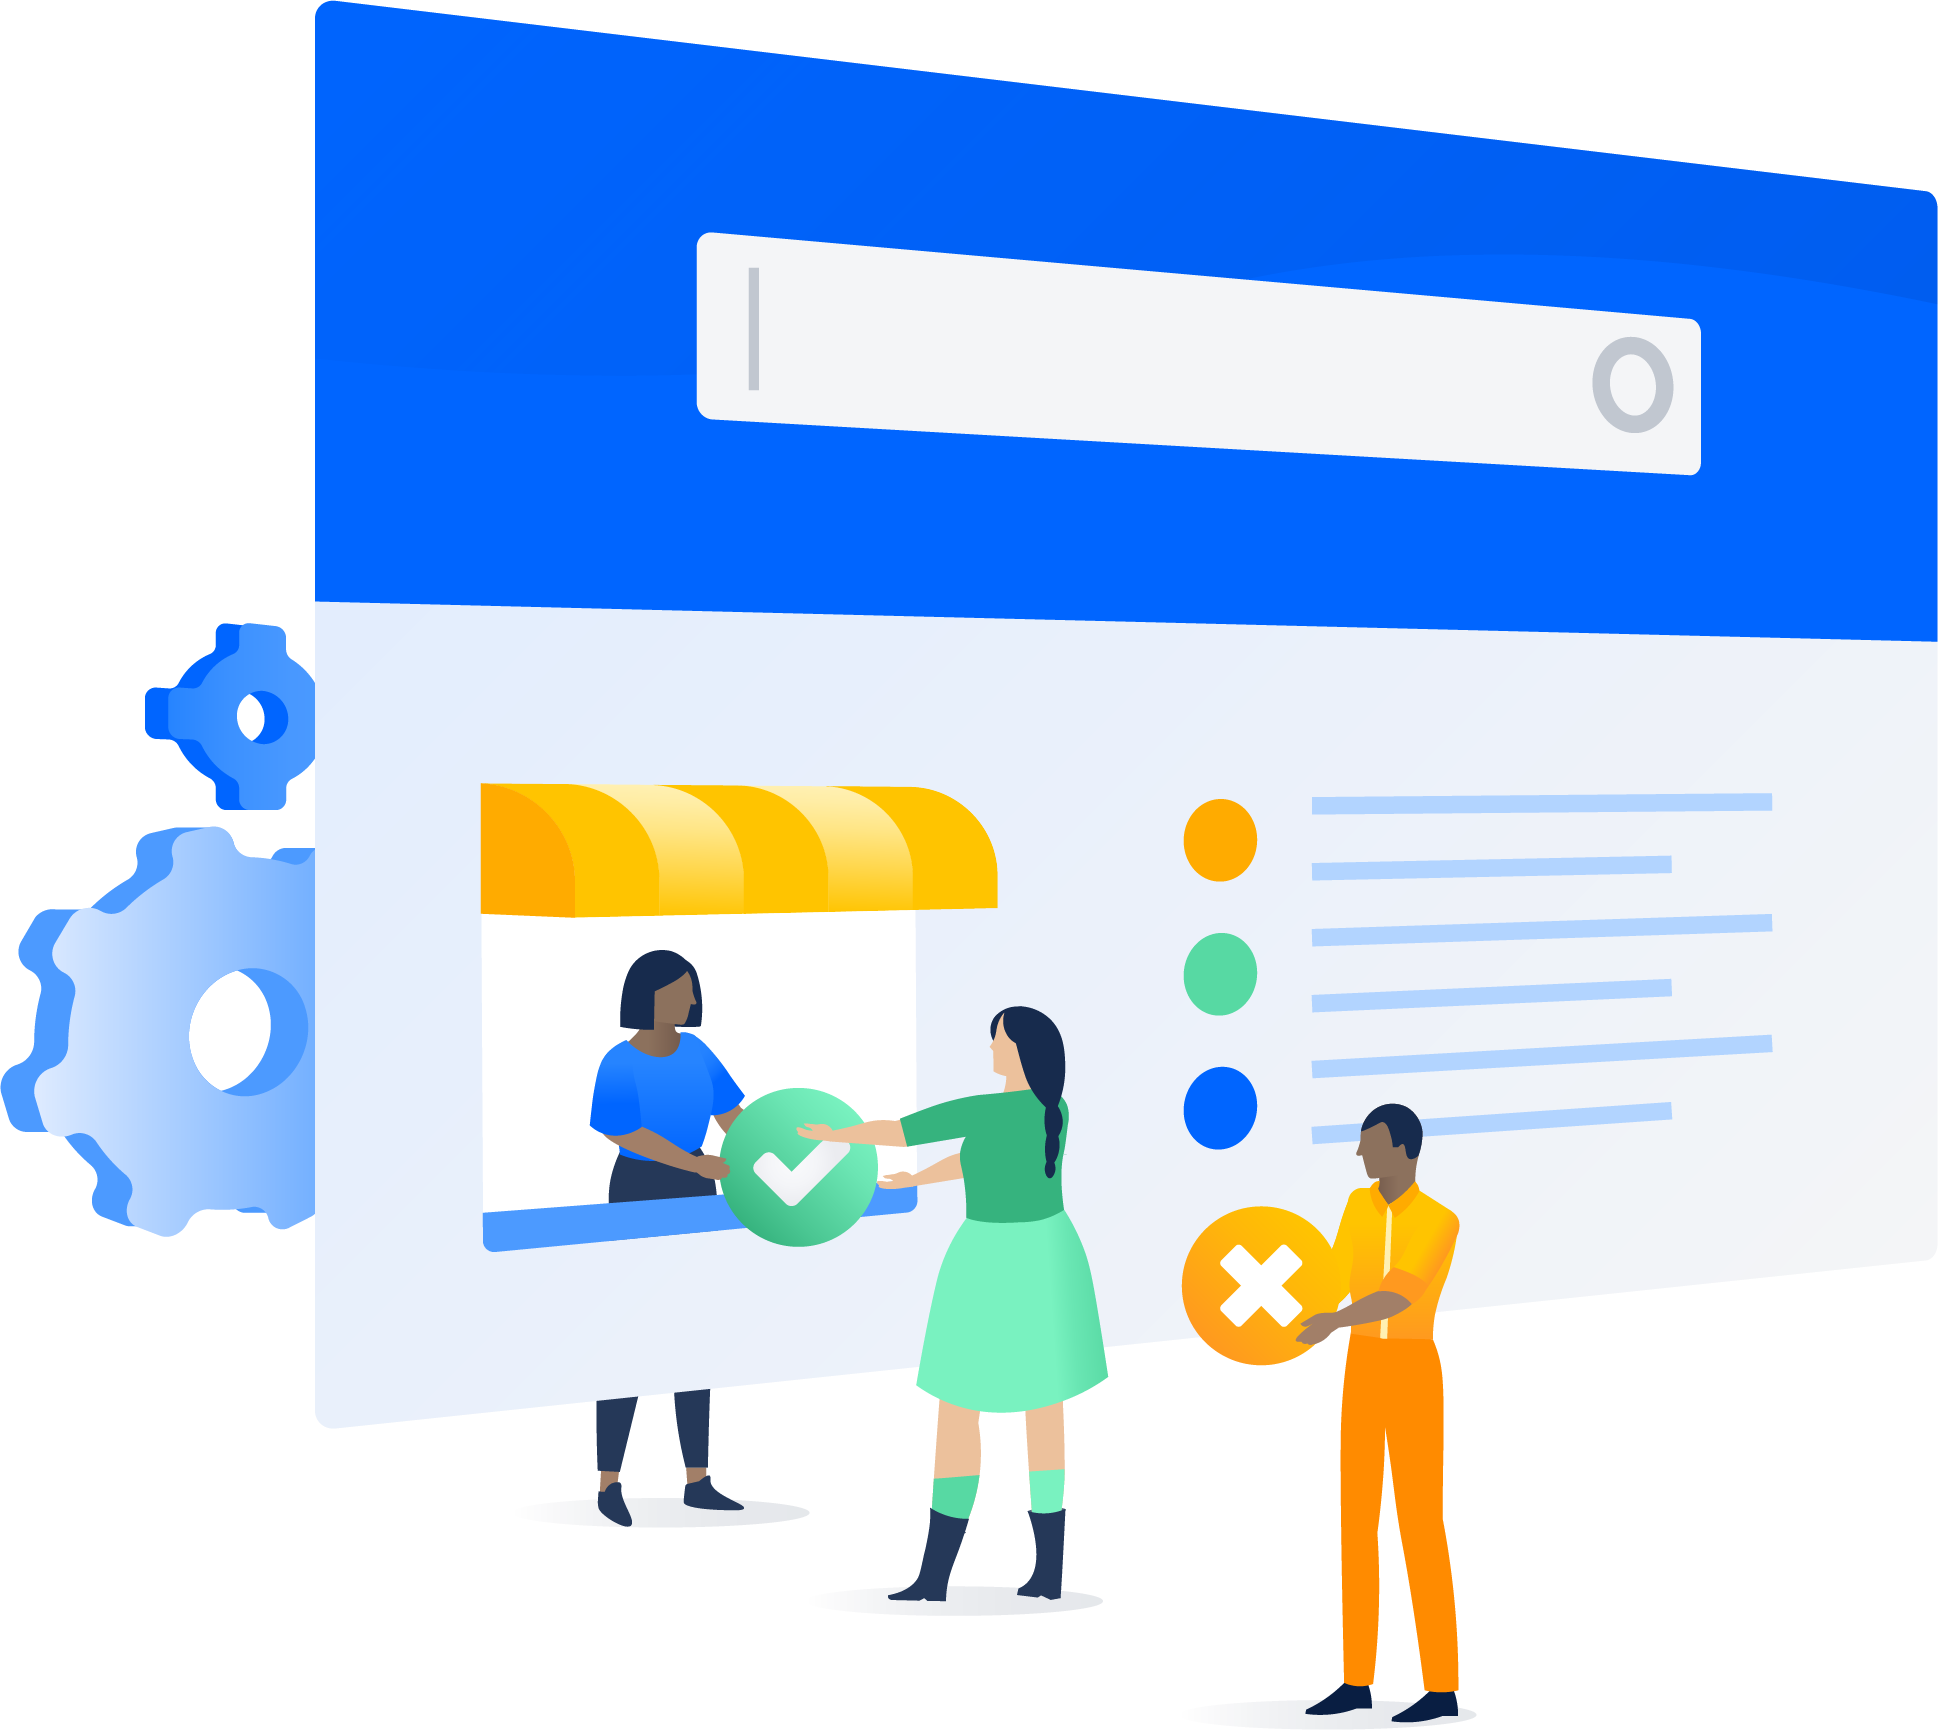 Jira Service Desk kiosk with people trading x icons for check icons